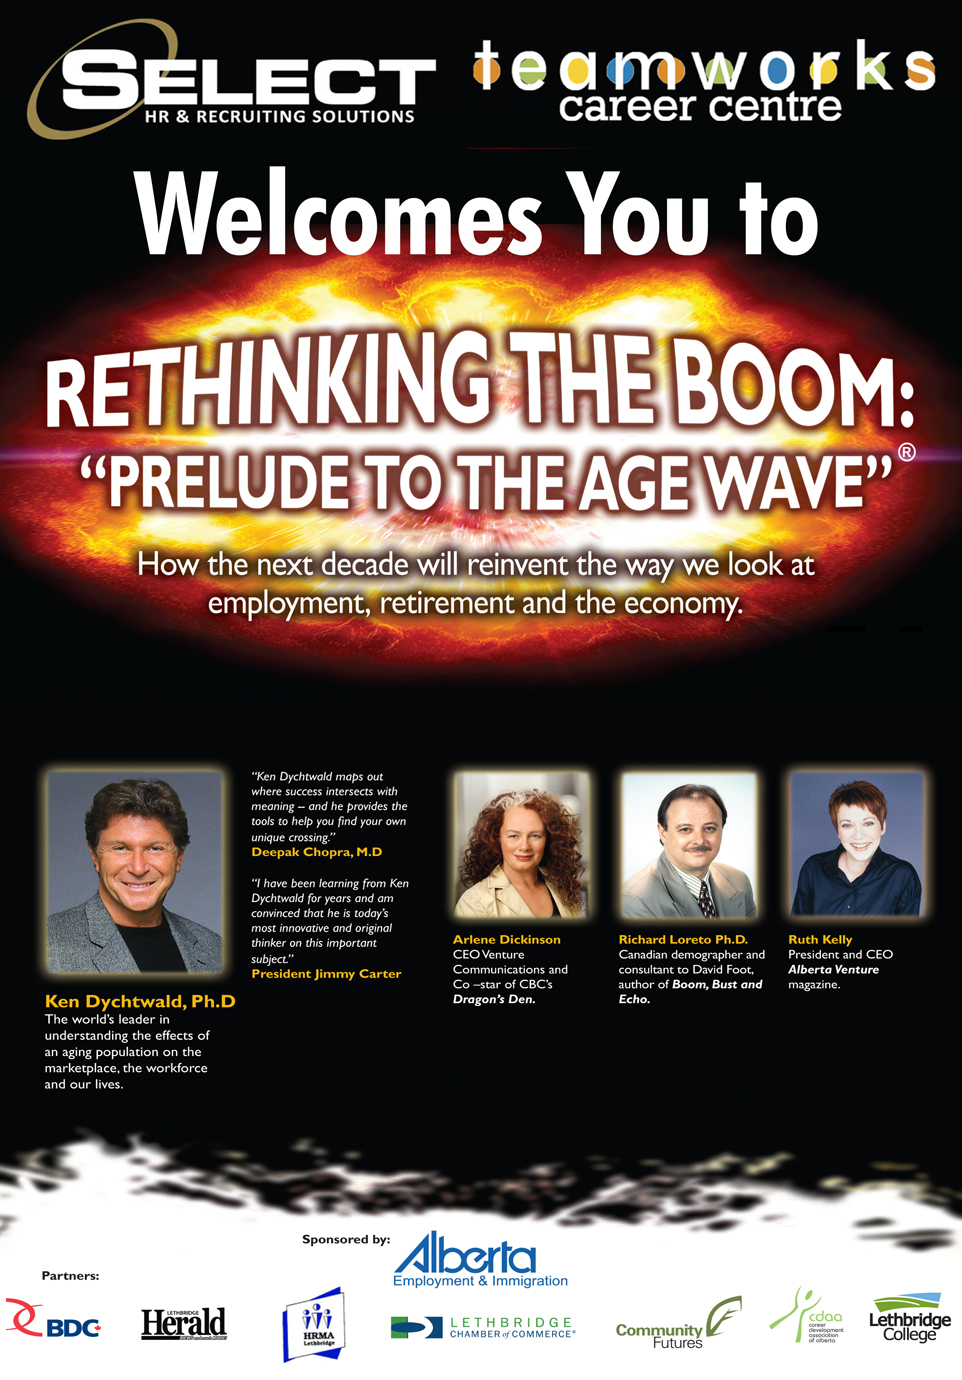 TWT - Rethinking the Boom - Prelude to the Age Wave Conference Poster